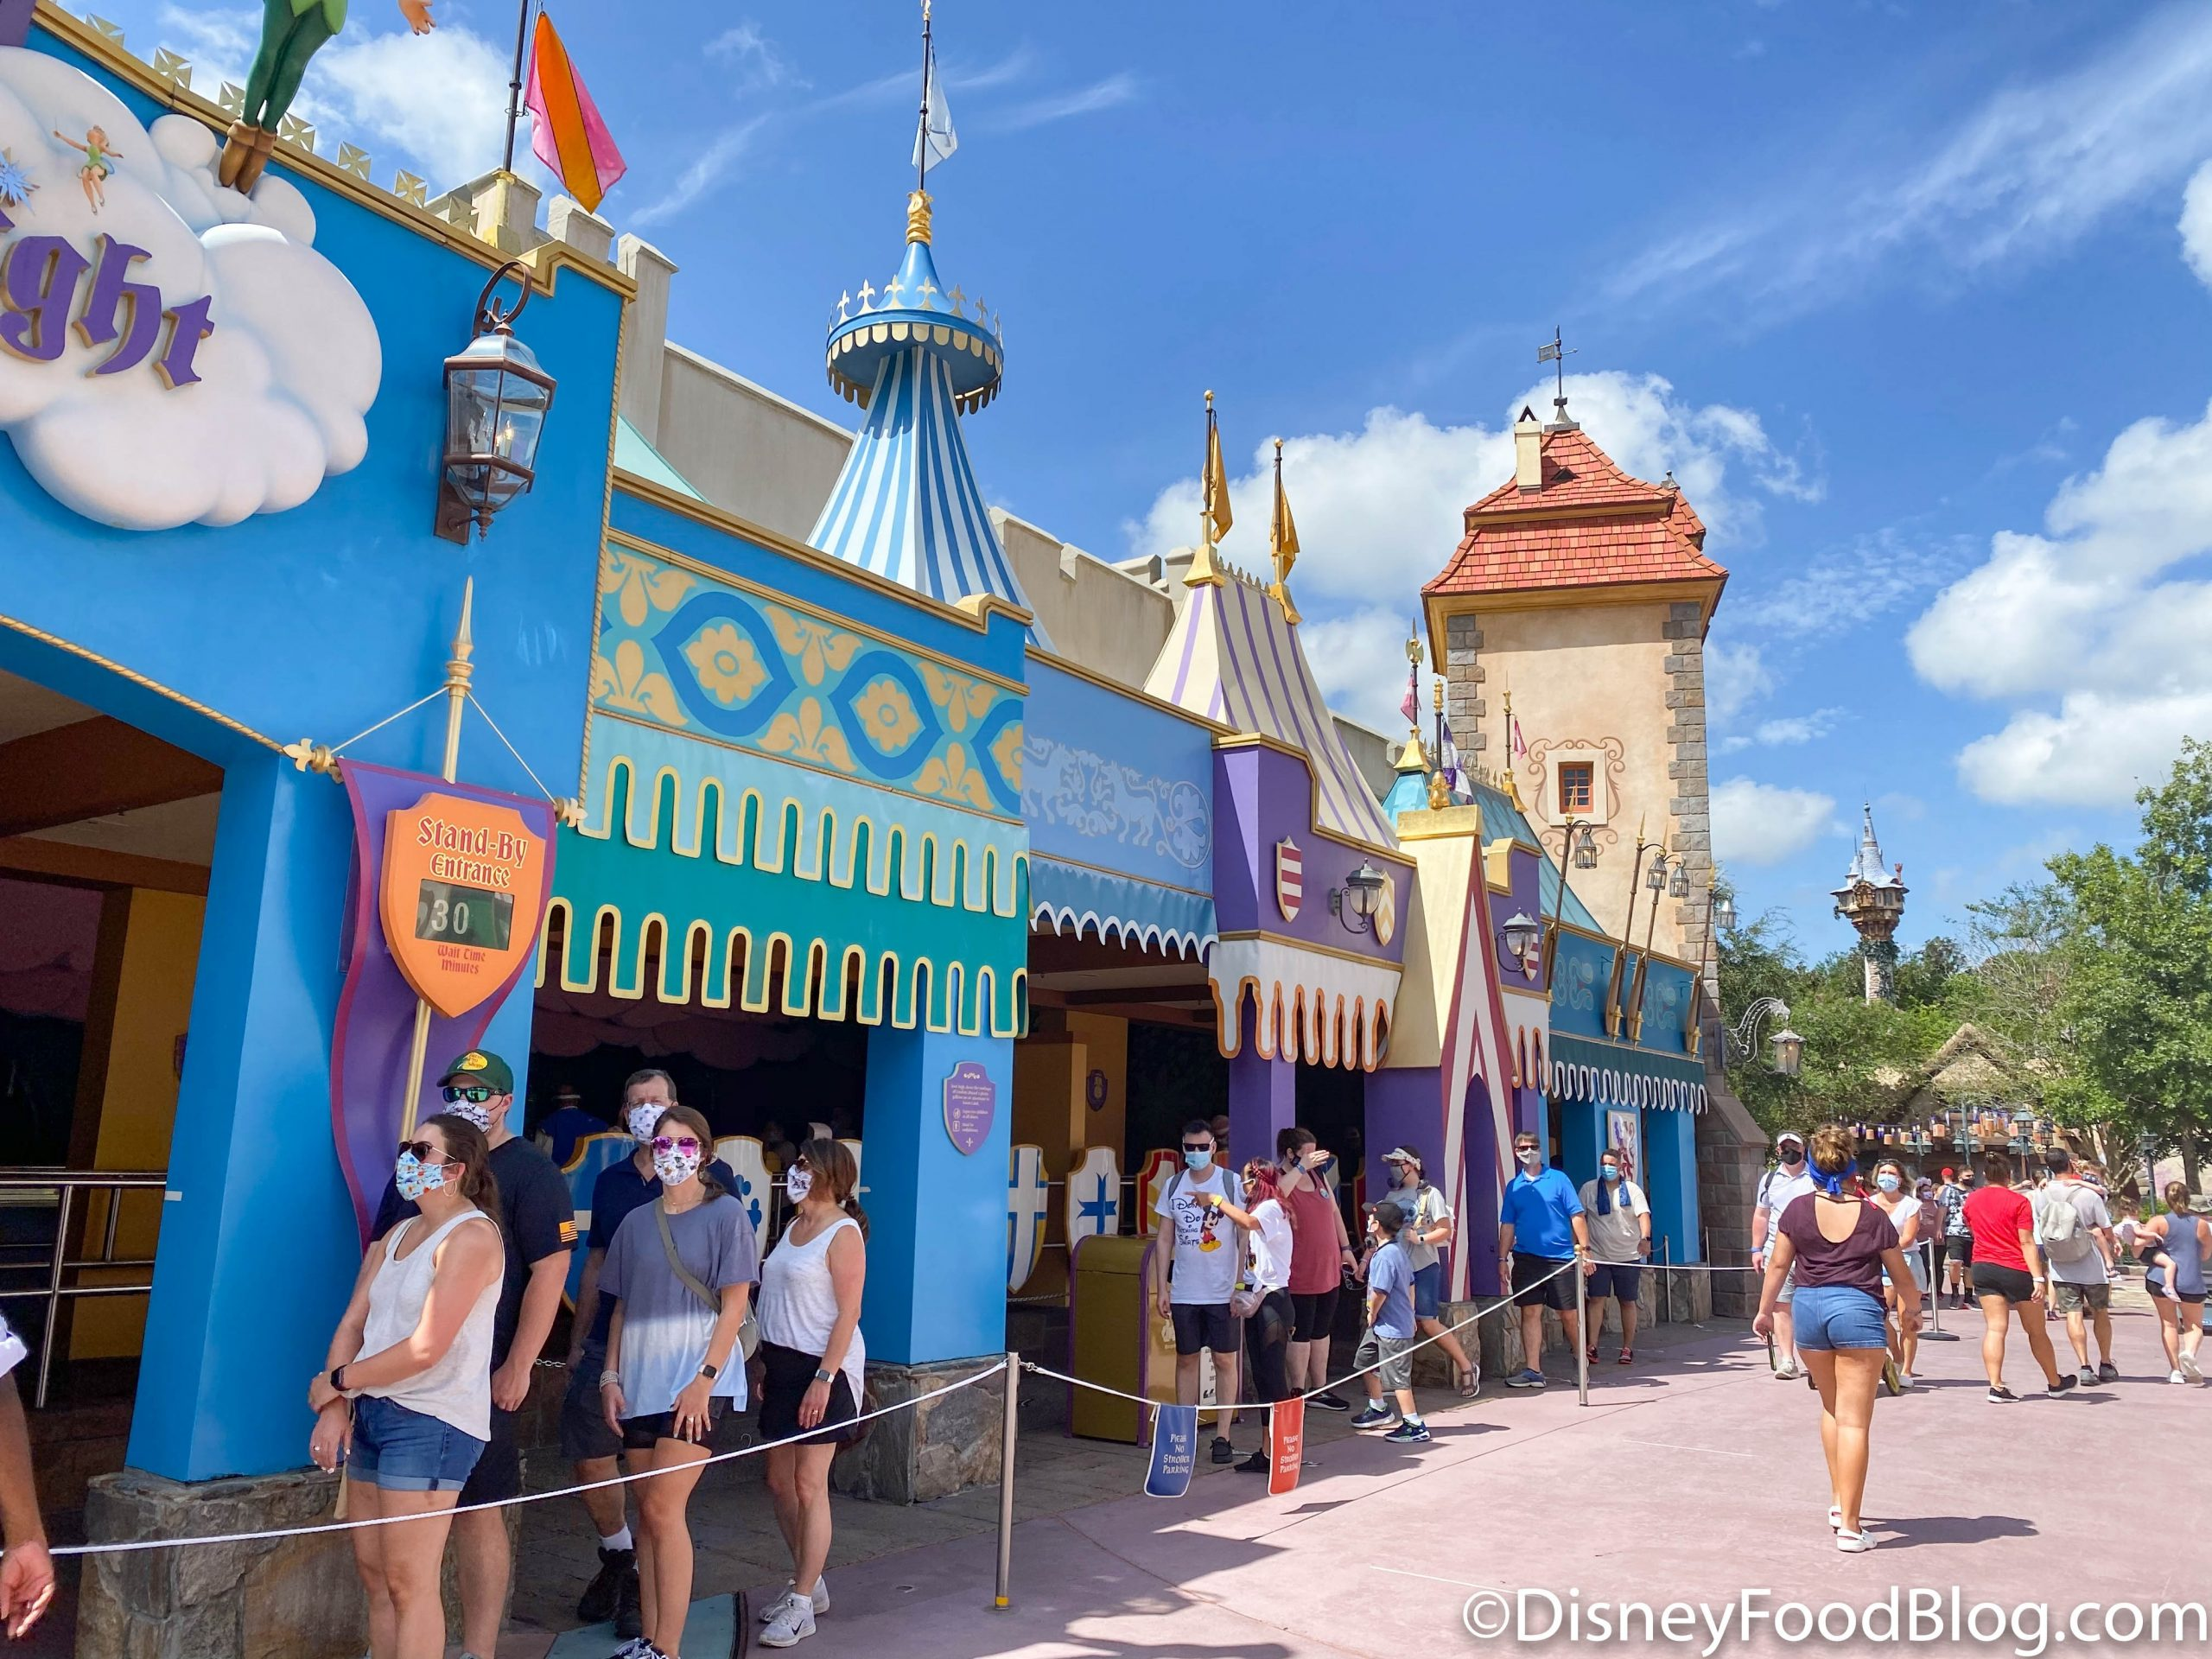 Photos And Videos! Check Out The Labor Day Crowds In Disney-Labor Day 2021 Wdw Crowds